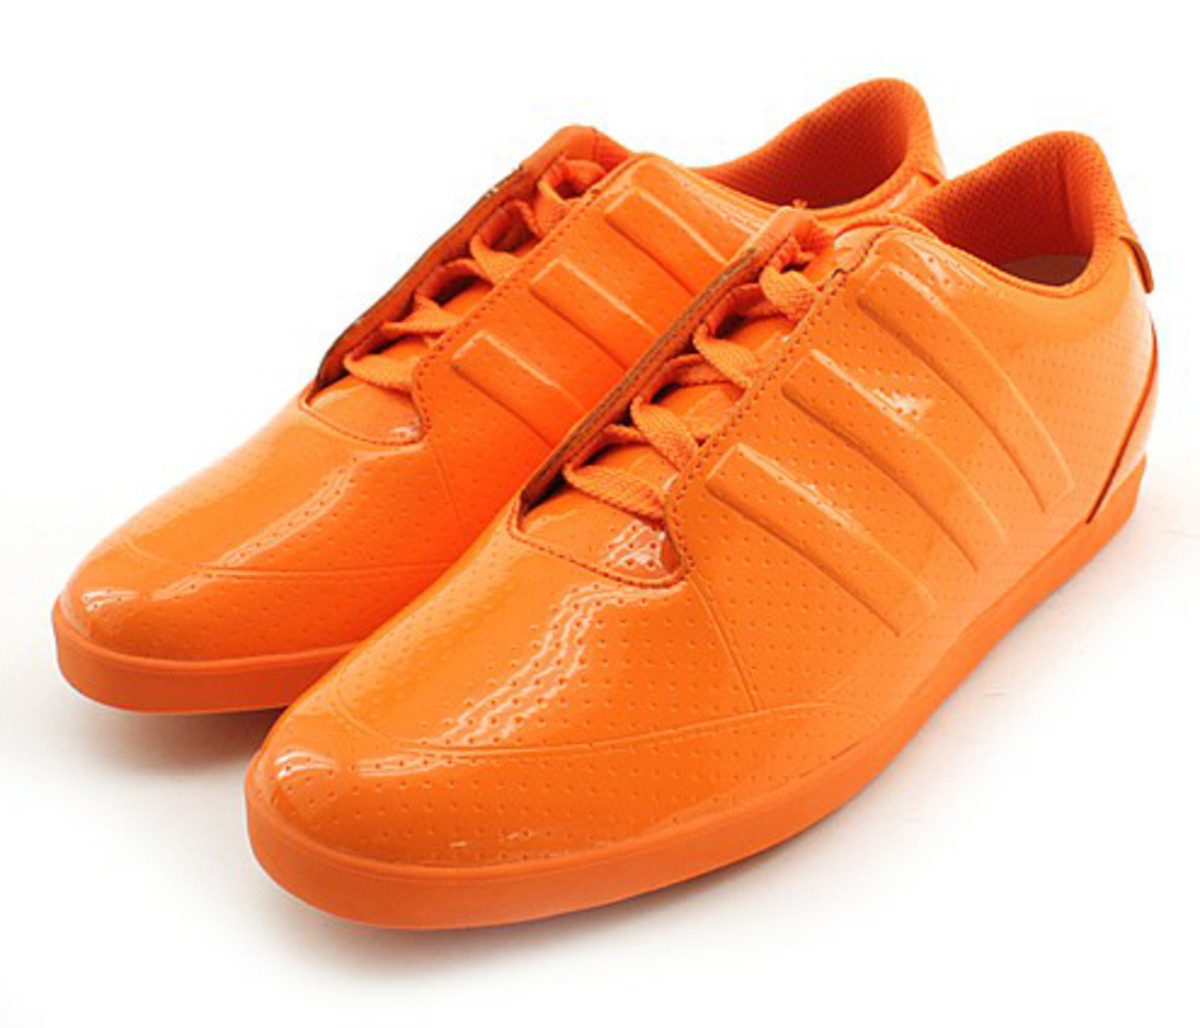 adidas-y-3-spring-summer-2010-honja-low-01